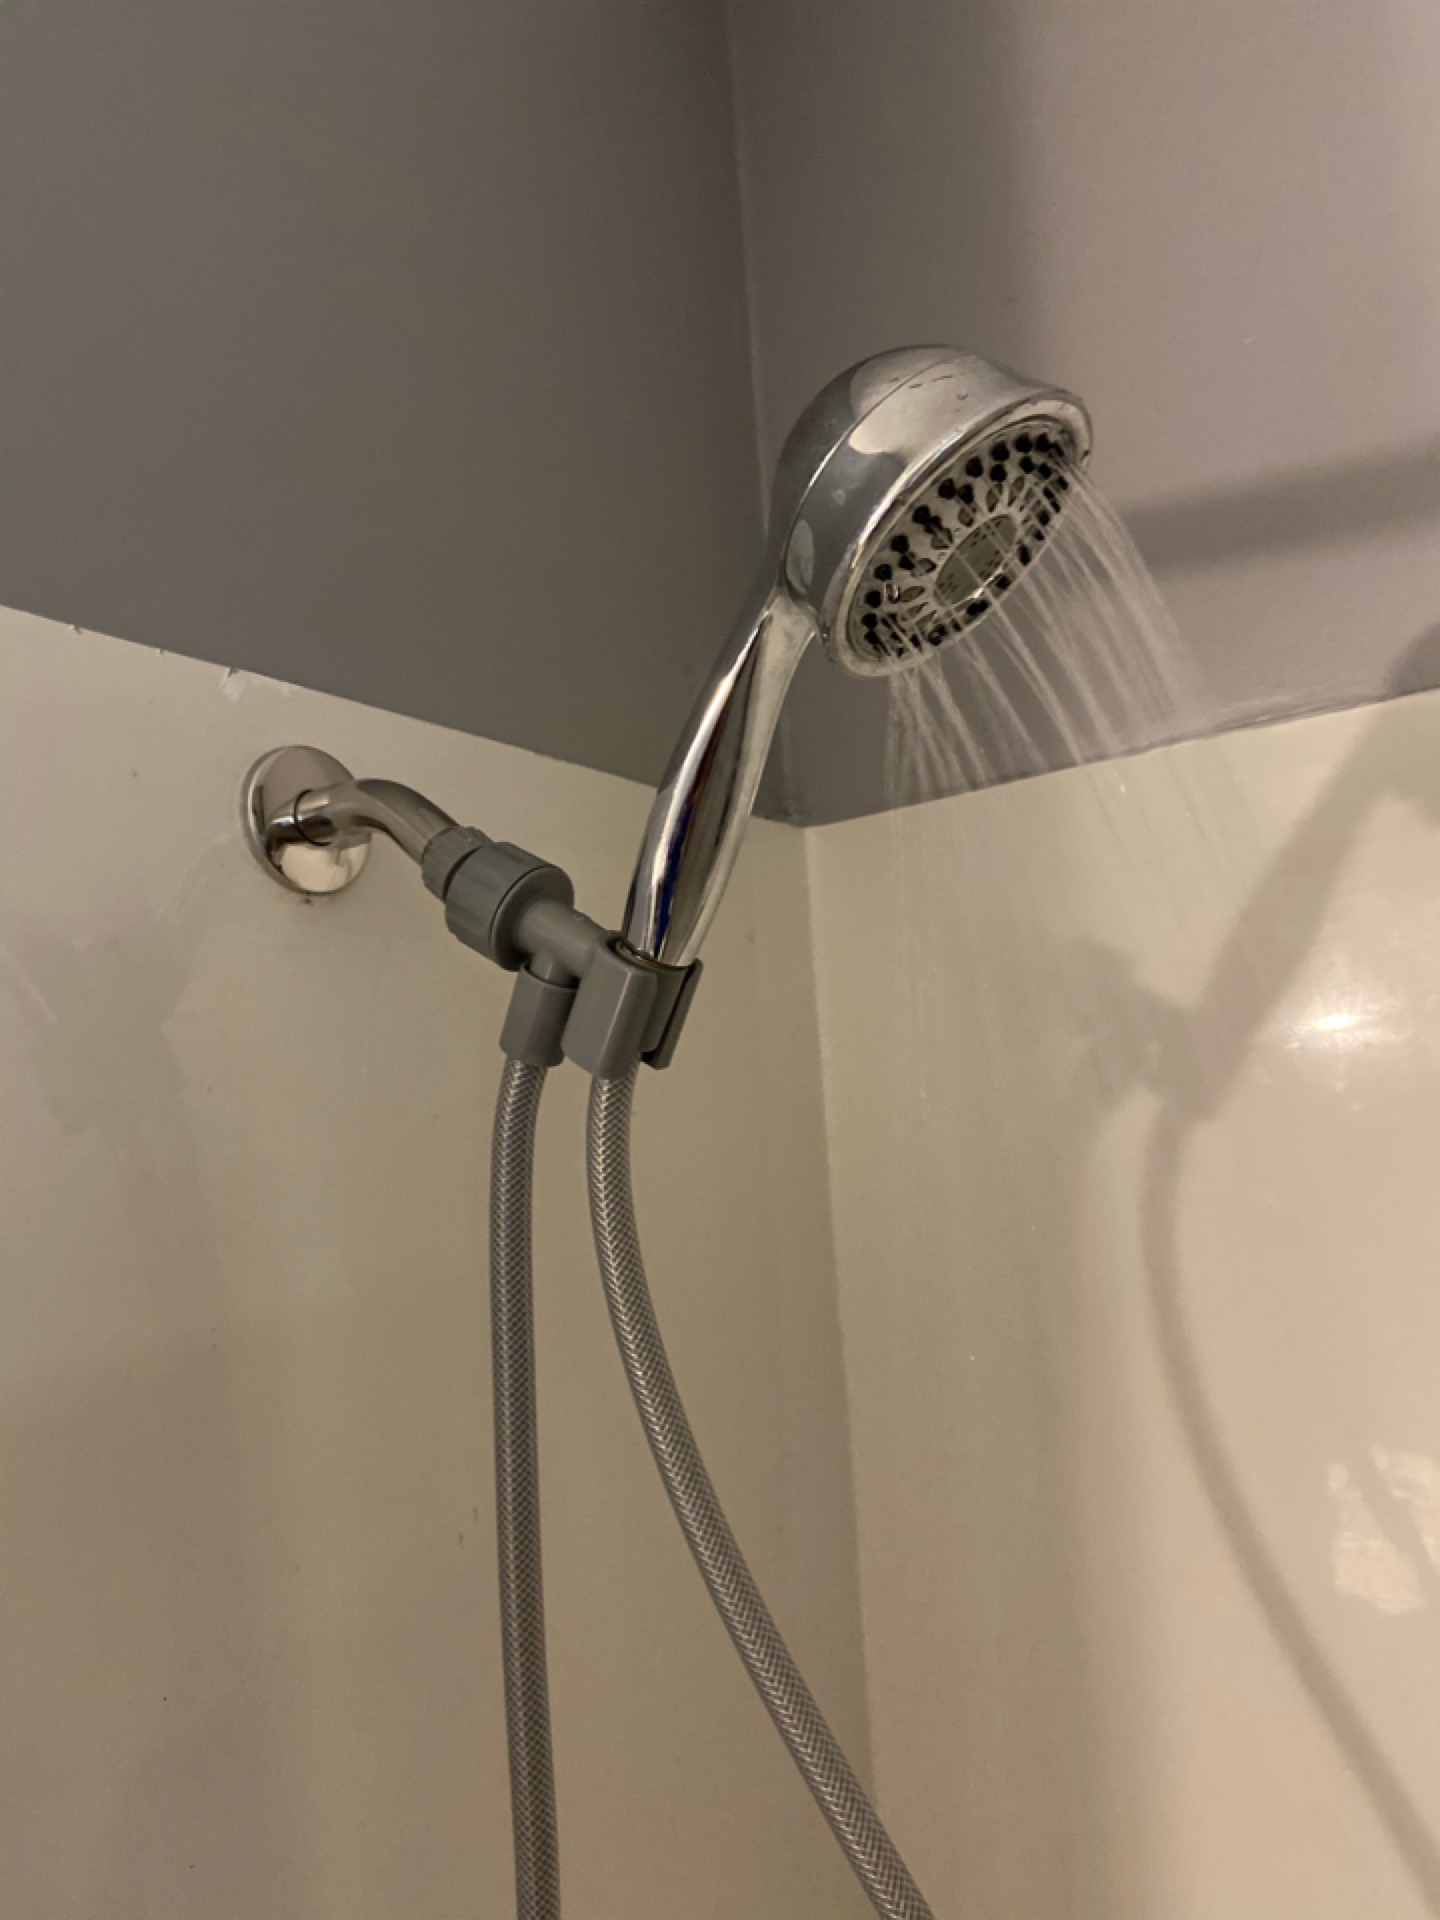 A plumber near me in Silver Creek, GA replaced a broken shower arm and replaced a wax ring on a toilet